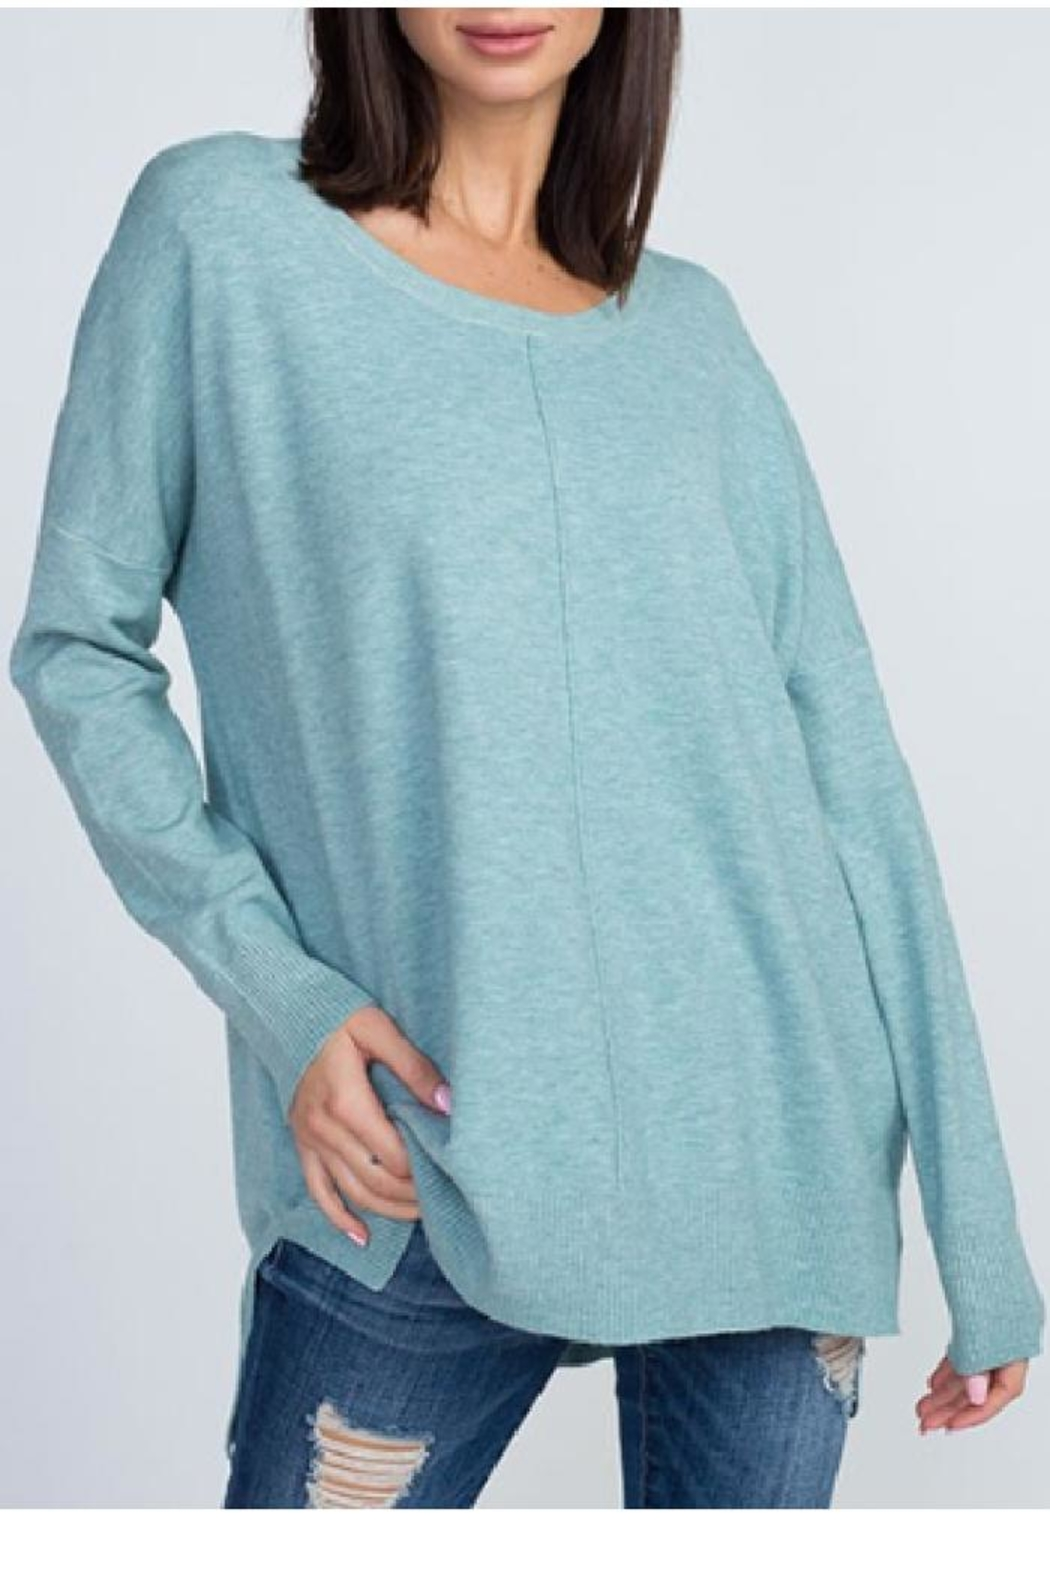 8bd2ee4925e2 Dreamers Crew Neck Sweater from Oregon by Patina Soul — Shoptiques